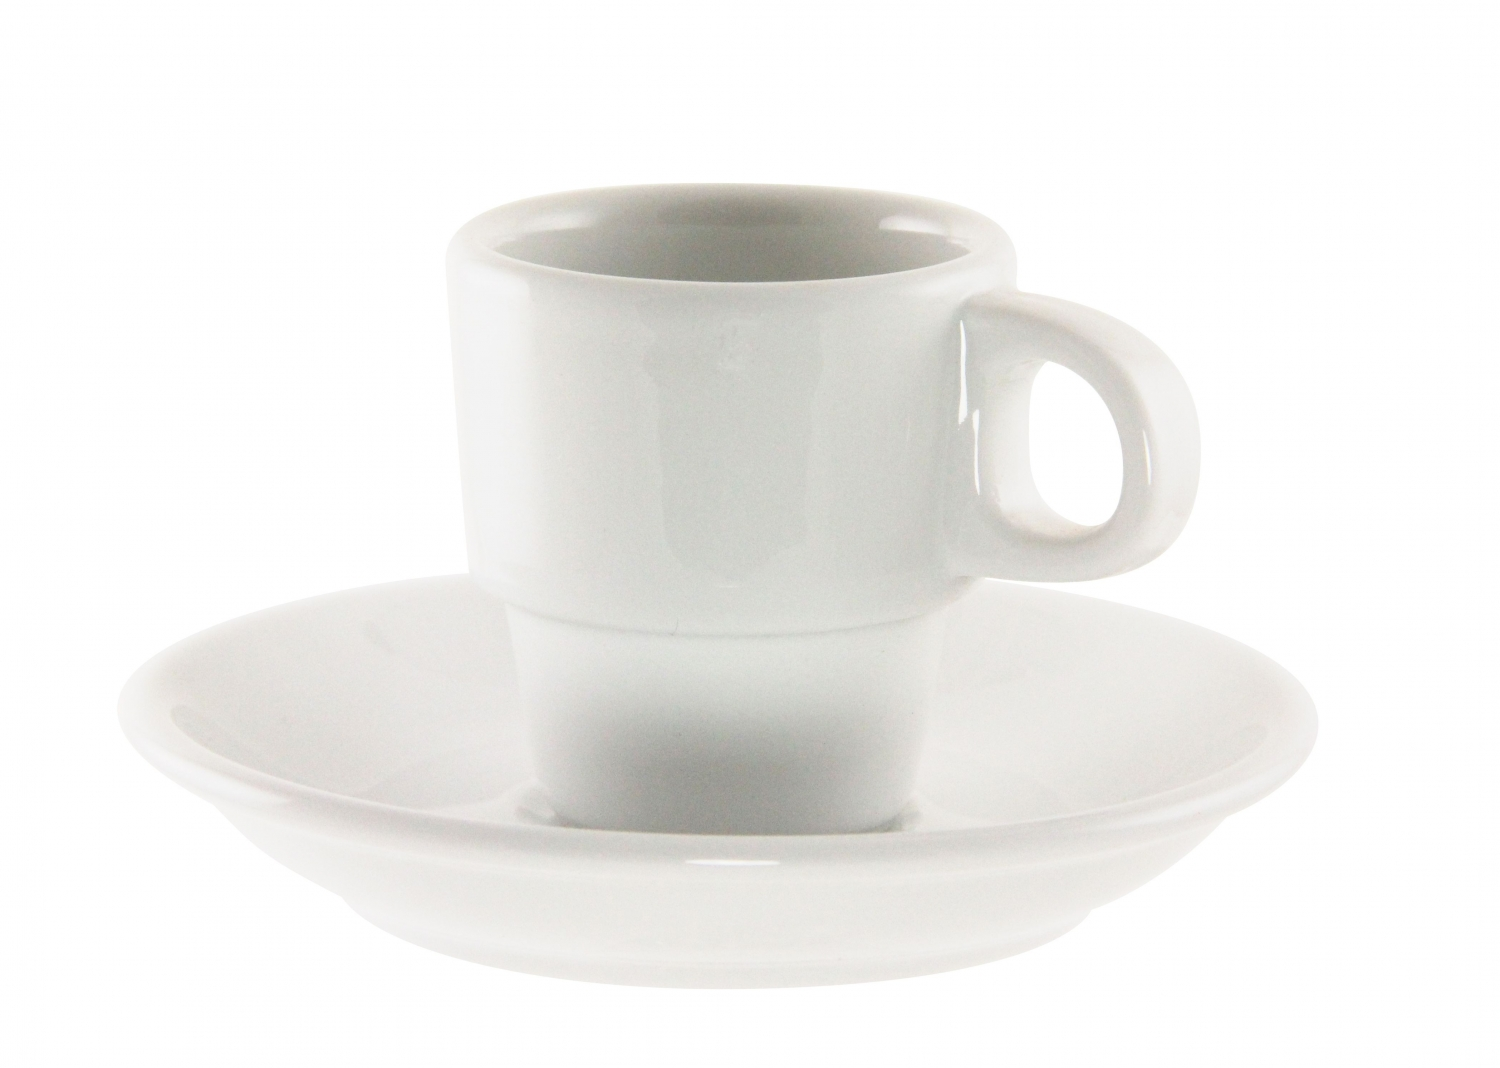 10 Strawberry Street BISTRO-9 2 oz. White Demitasse Cup and Saucer Set